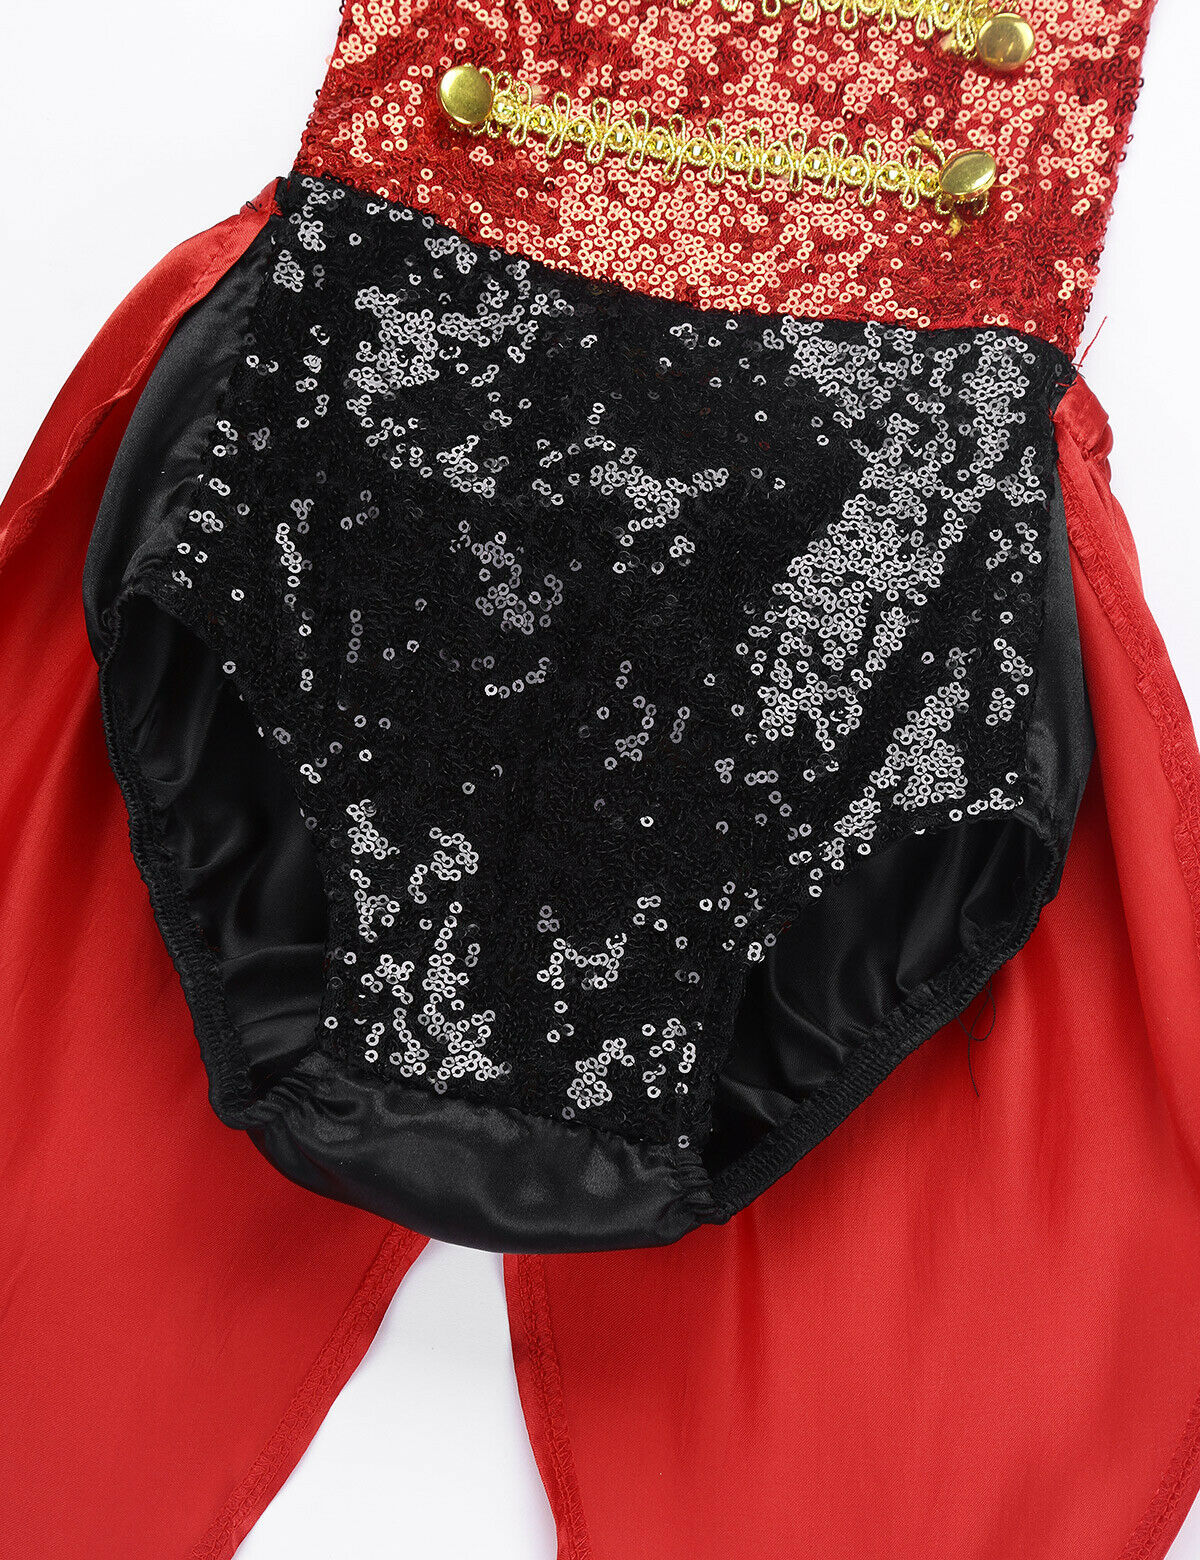 ACSUSS Baby Girls Circus Ringmaster Costume Outfits Fancy Dress Up Halloween Christmas Cosplay Costume